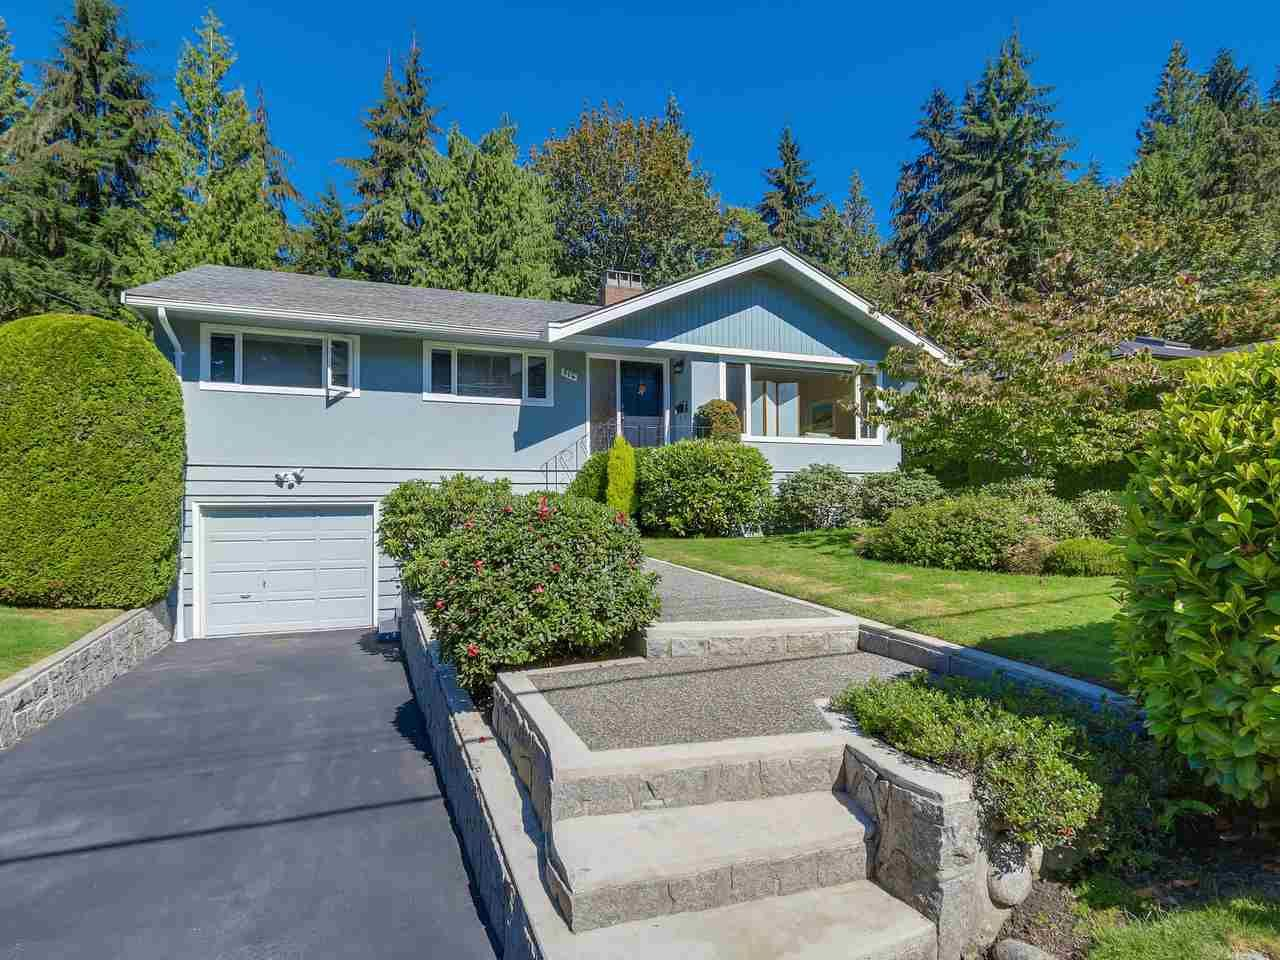 """Main Photo: 974 BELVEDERE Drive in North Vancouver: Canyon Heights NV House for sale in """"Canyon Heights"""" : MLS®# R2106348"""